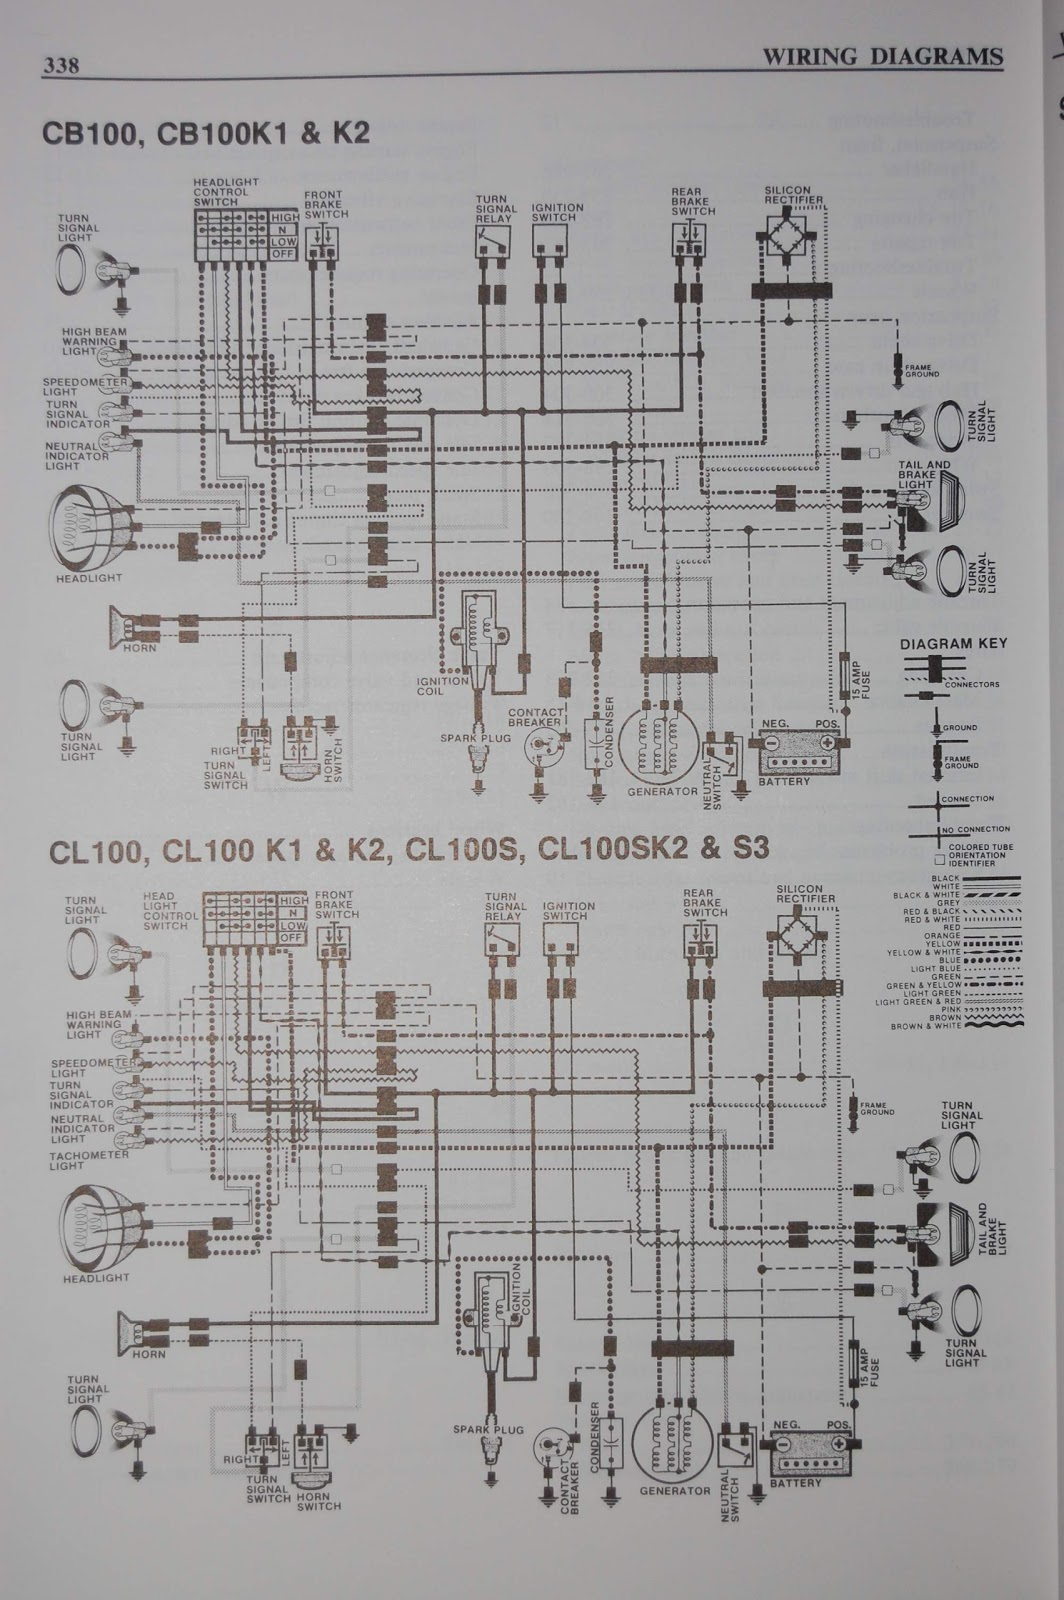 CB100+CL100+wiring+diagram 100 [ wiring diagram for xt500 ] powerdynamo assembly 1974 yamaha ty250 wiring diagram at webbmarketing.co